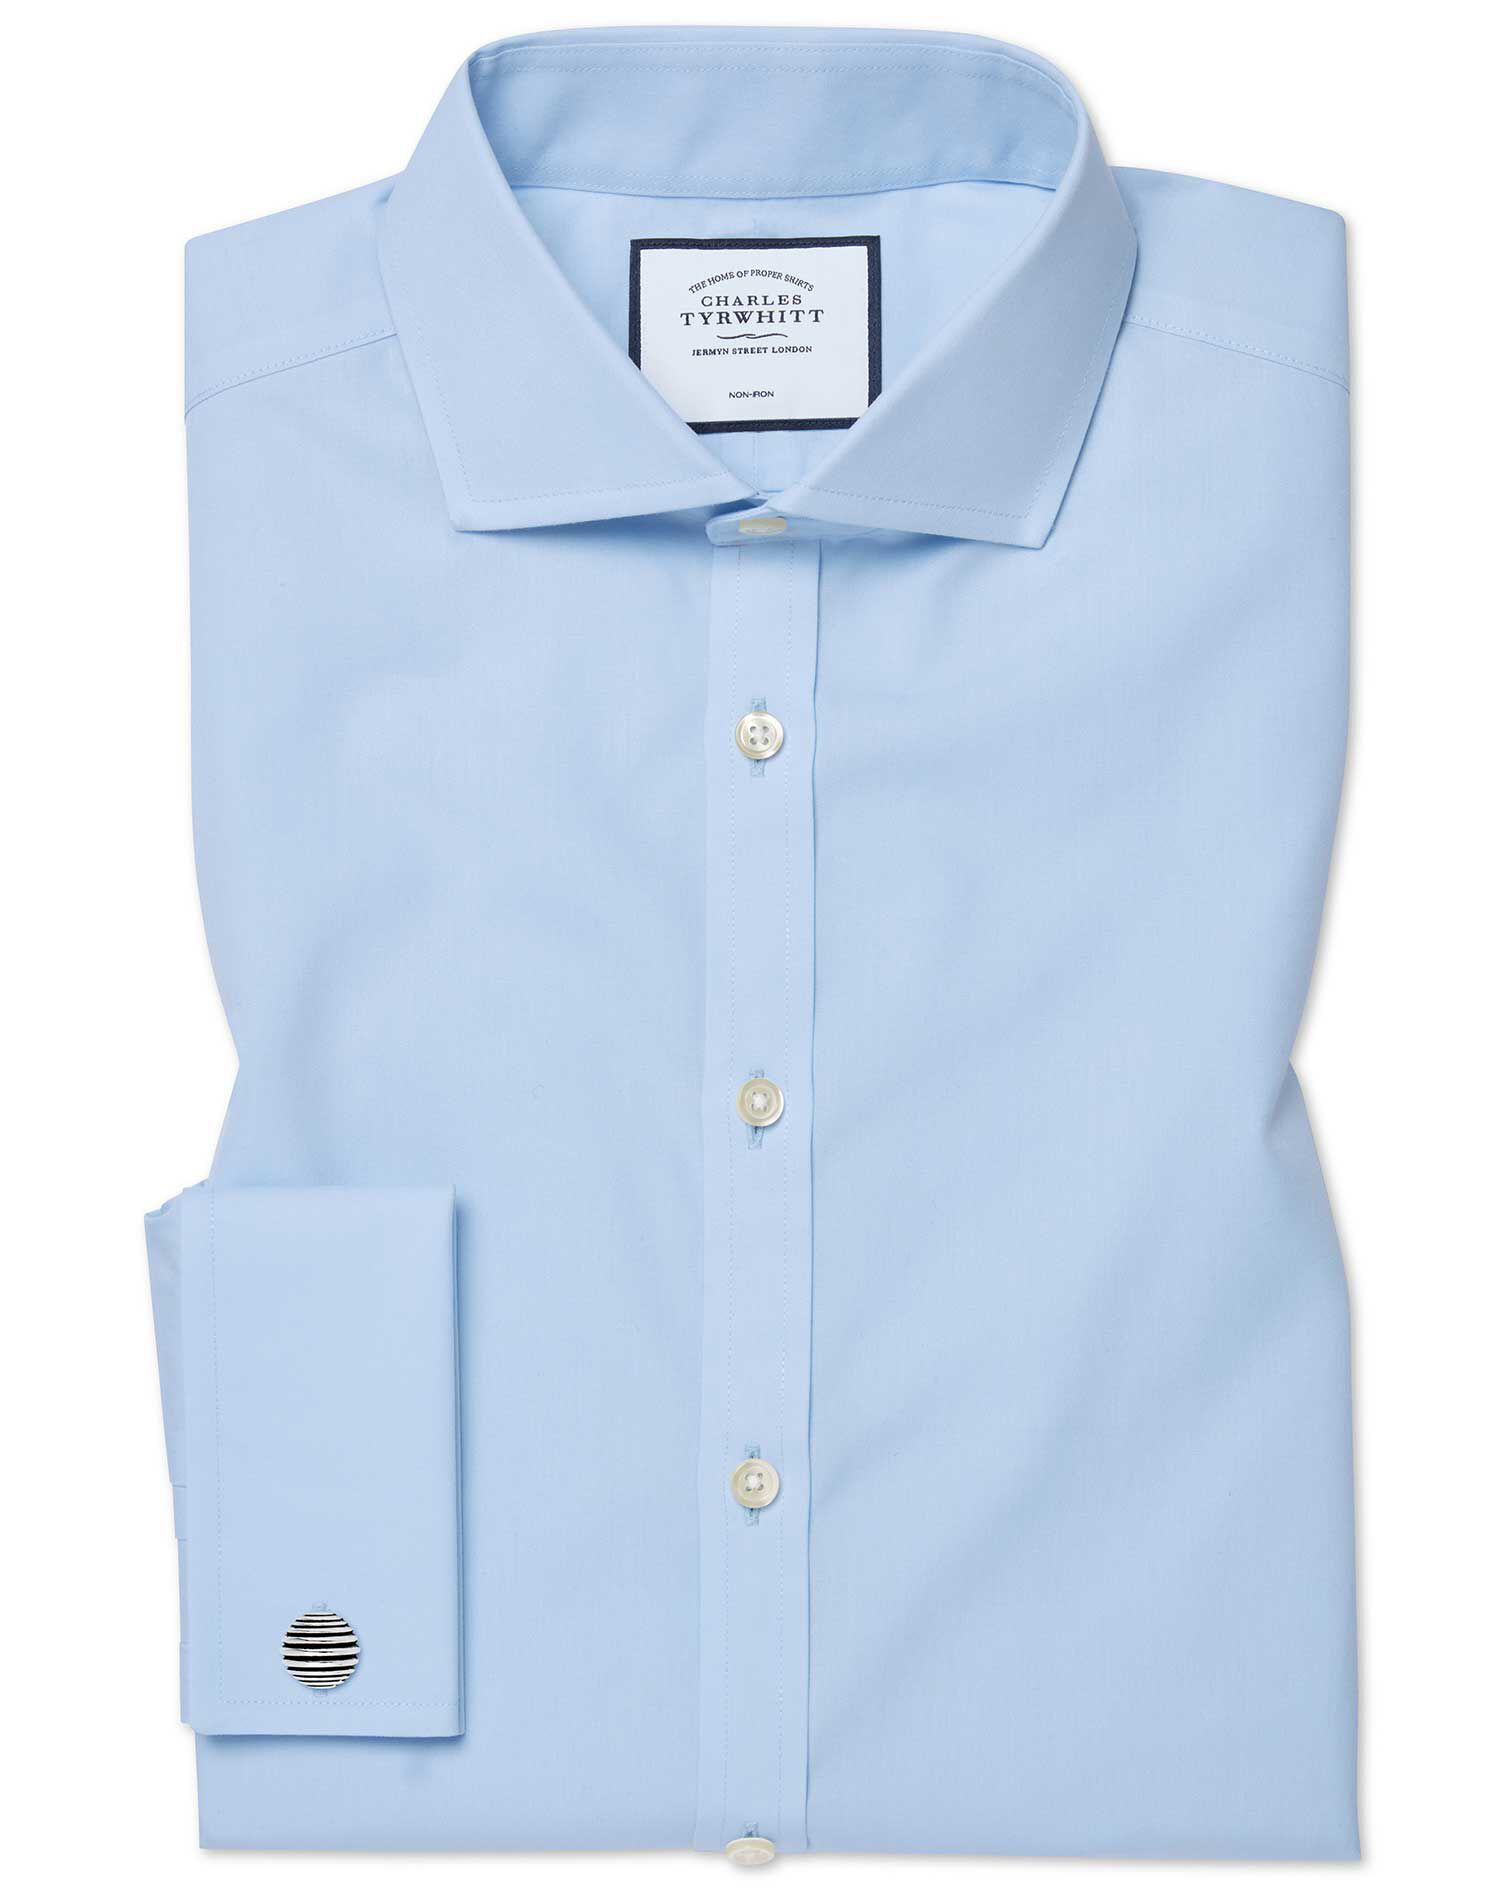 Classic Fit Cutaway Collar Non-Iron Twill Sky Blue Cotton Formal Shirt Single Cuff Size 19/35 by Cha